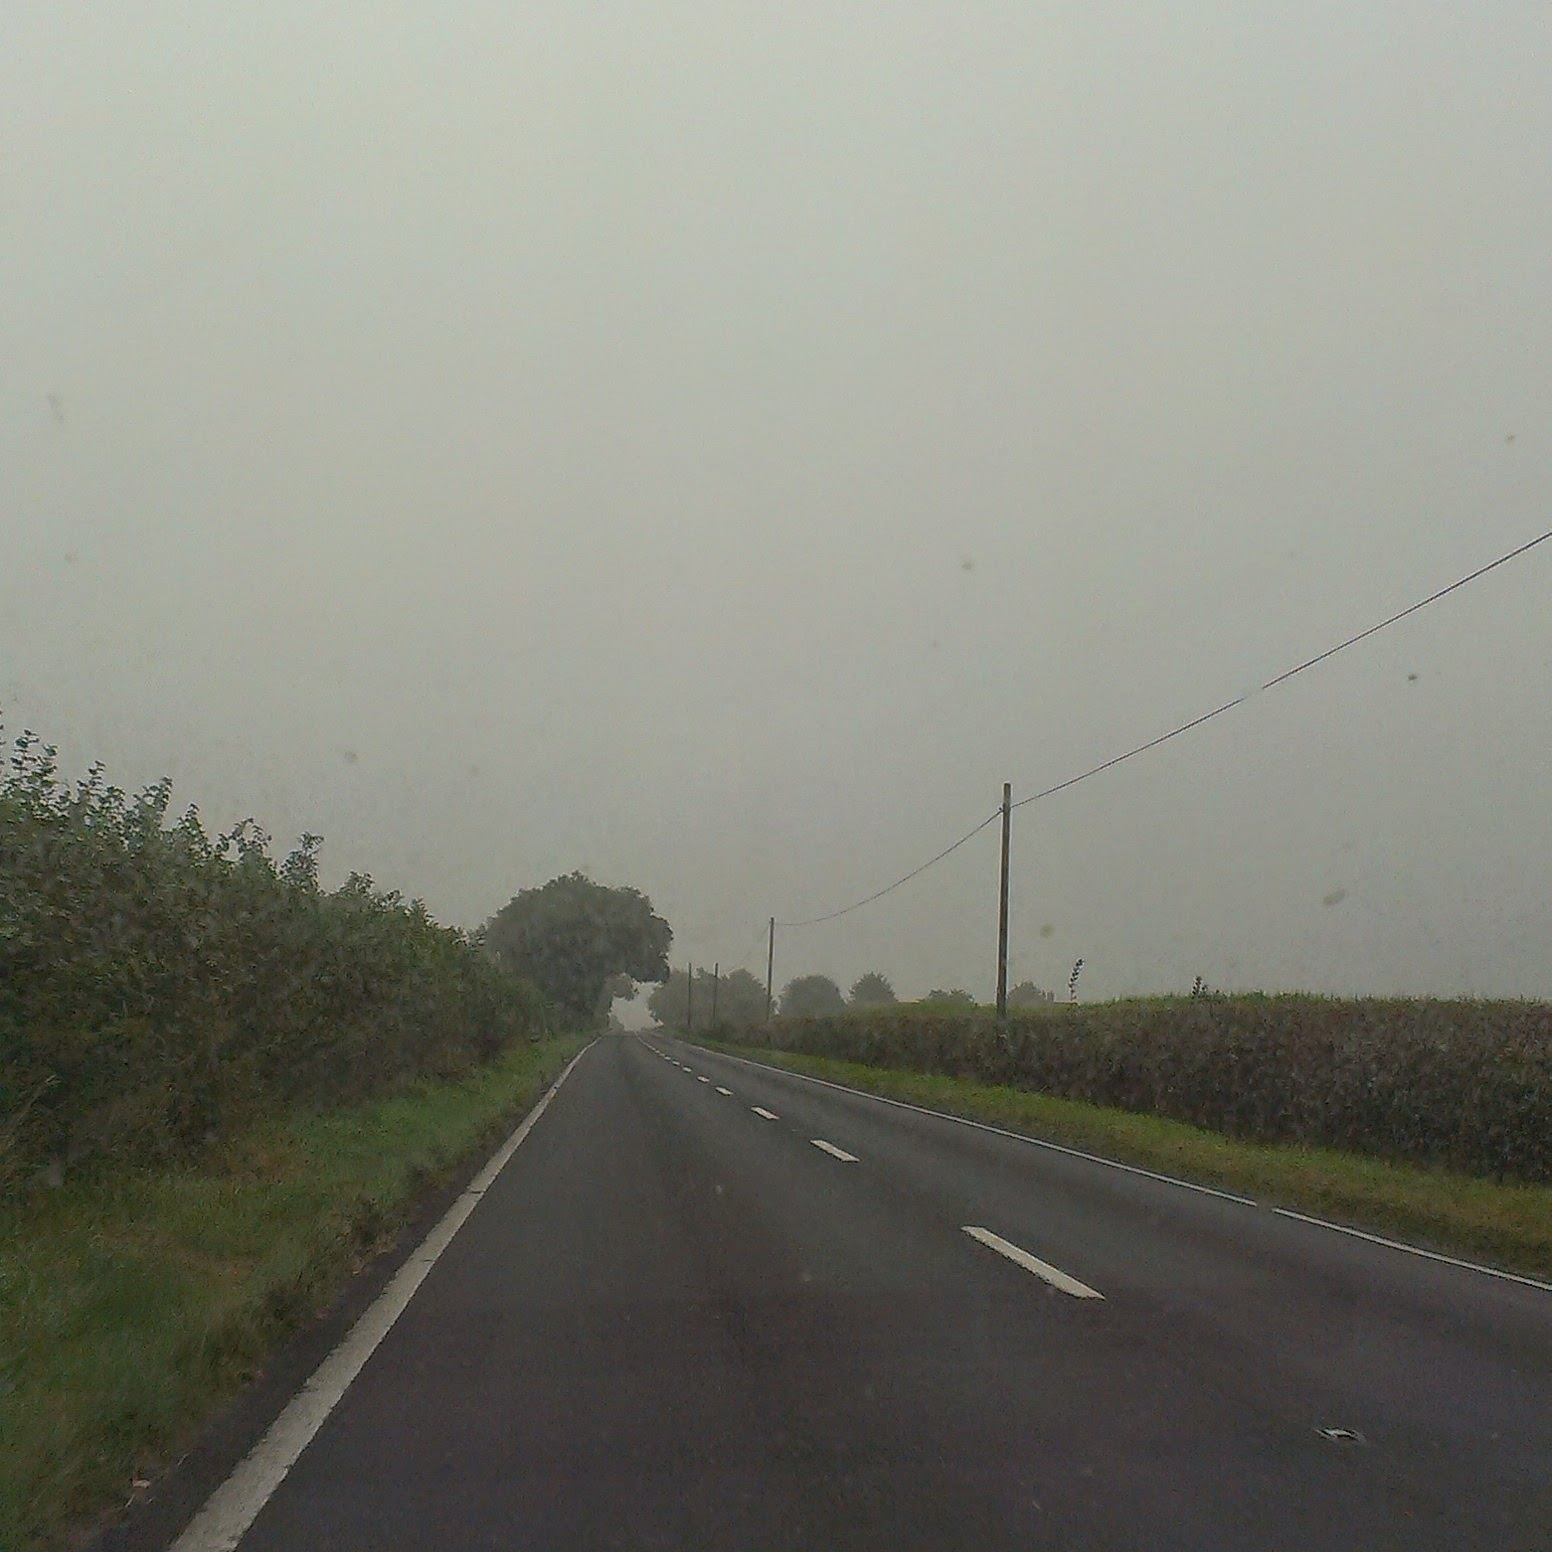 9am - driving through the mist